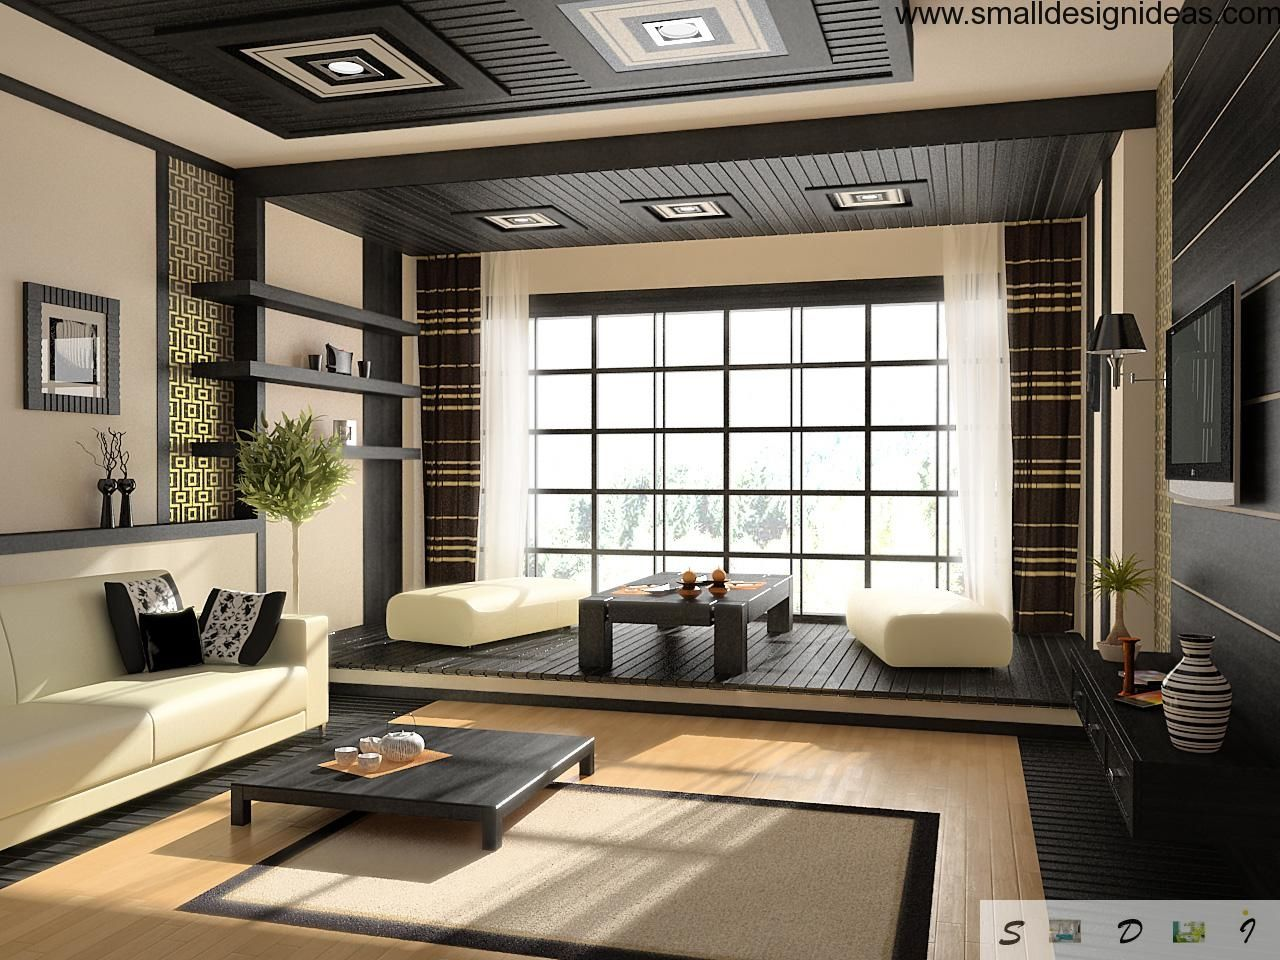 Interior design your house - 10 Things To Know Before Remodeling Your Interior Into Japanese Style